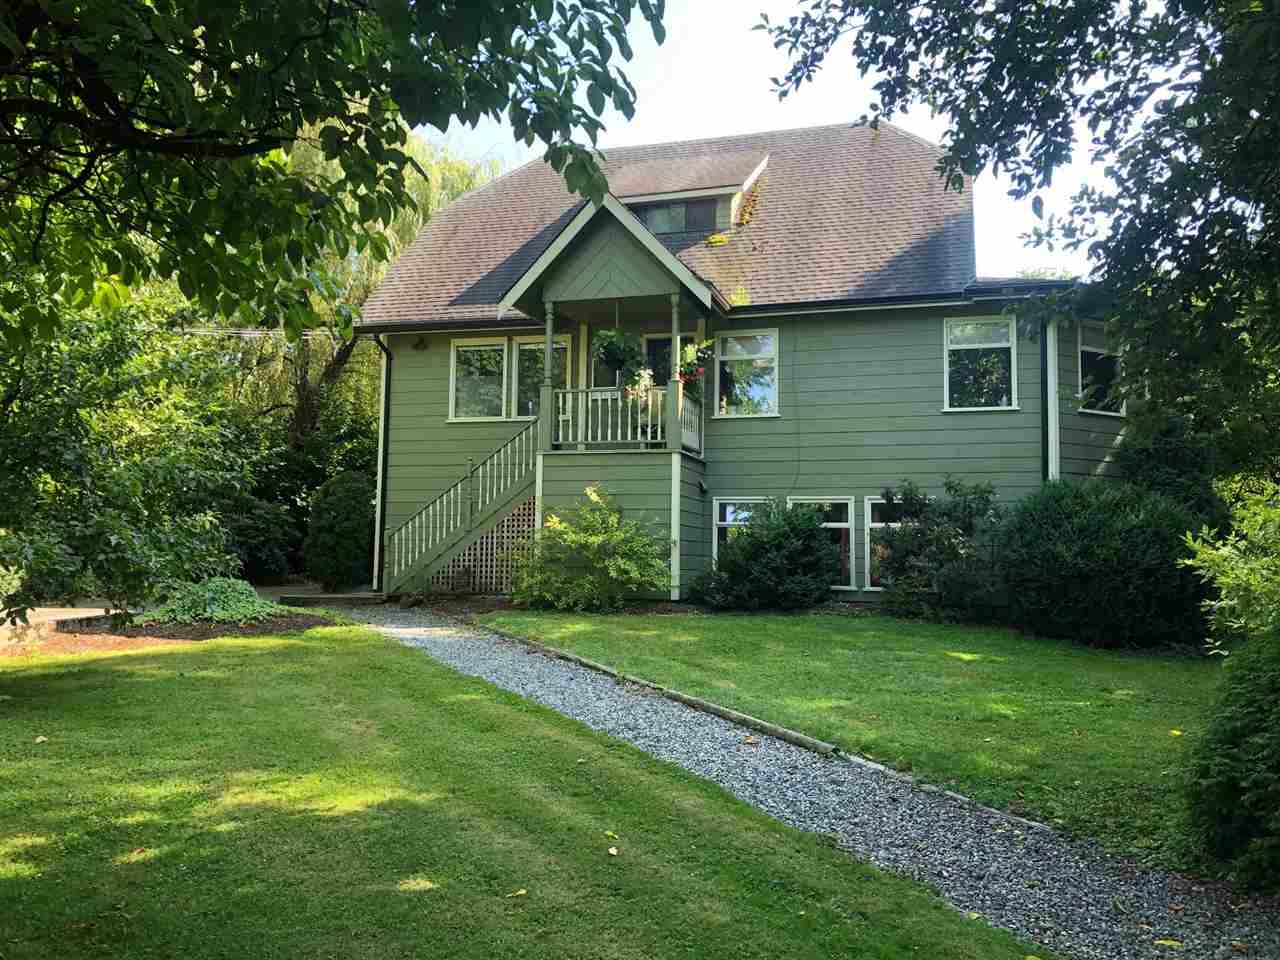 Main Photo: 27618 56 Avenue in Abbotsford: Bradner House for sale : MLS®# R2436900